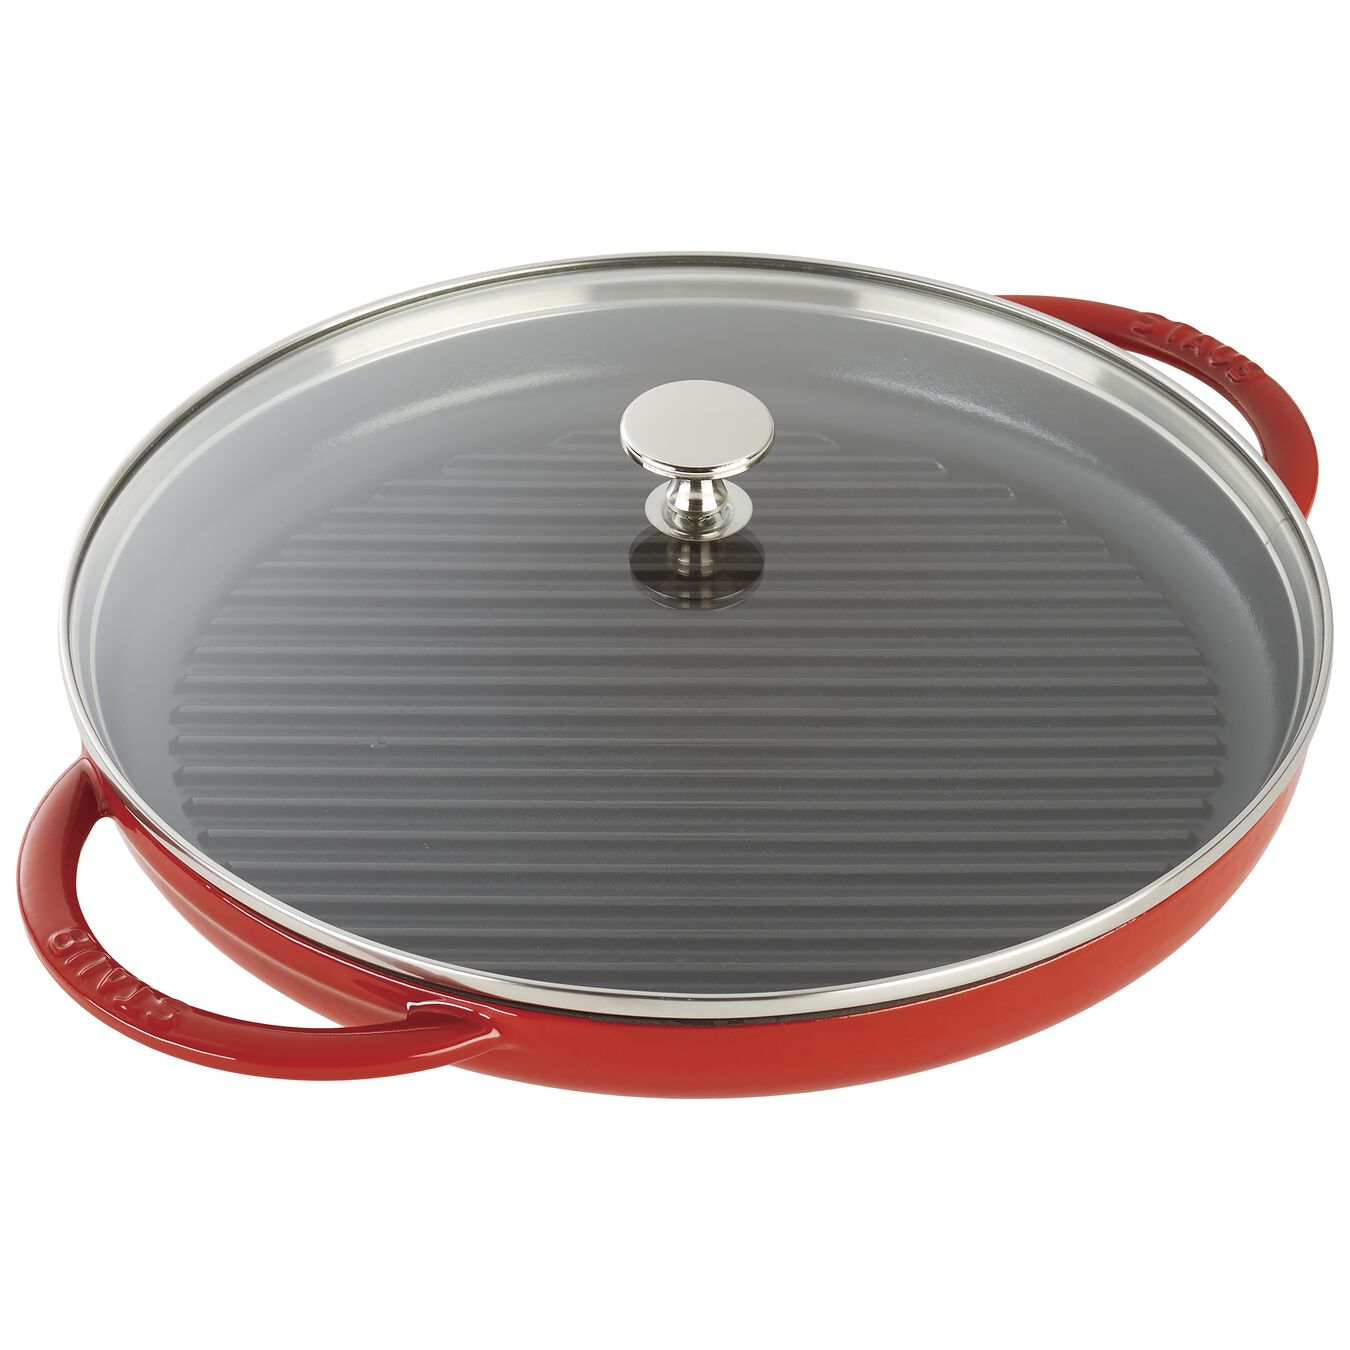 30 cm Cast iron round Gril with glass lid, Cherry,,large 2